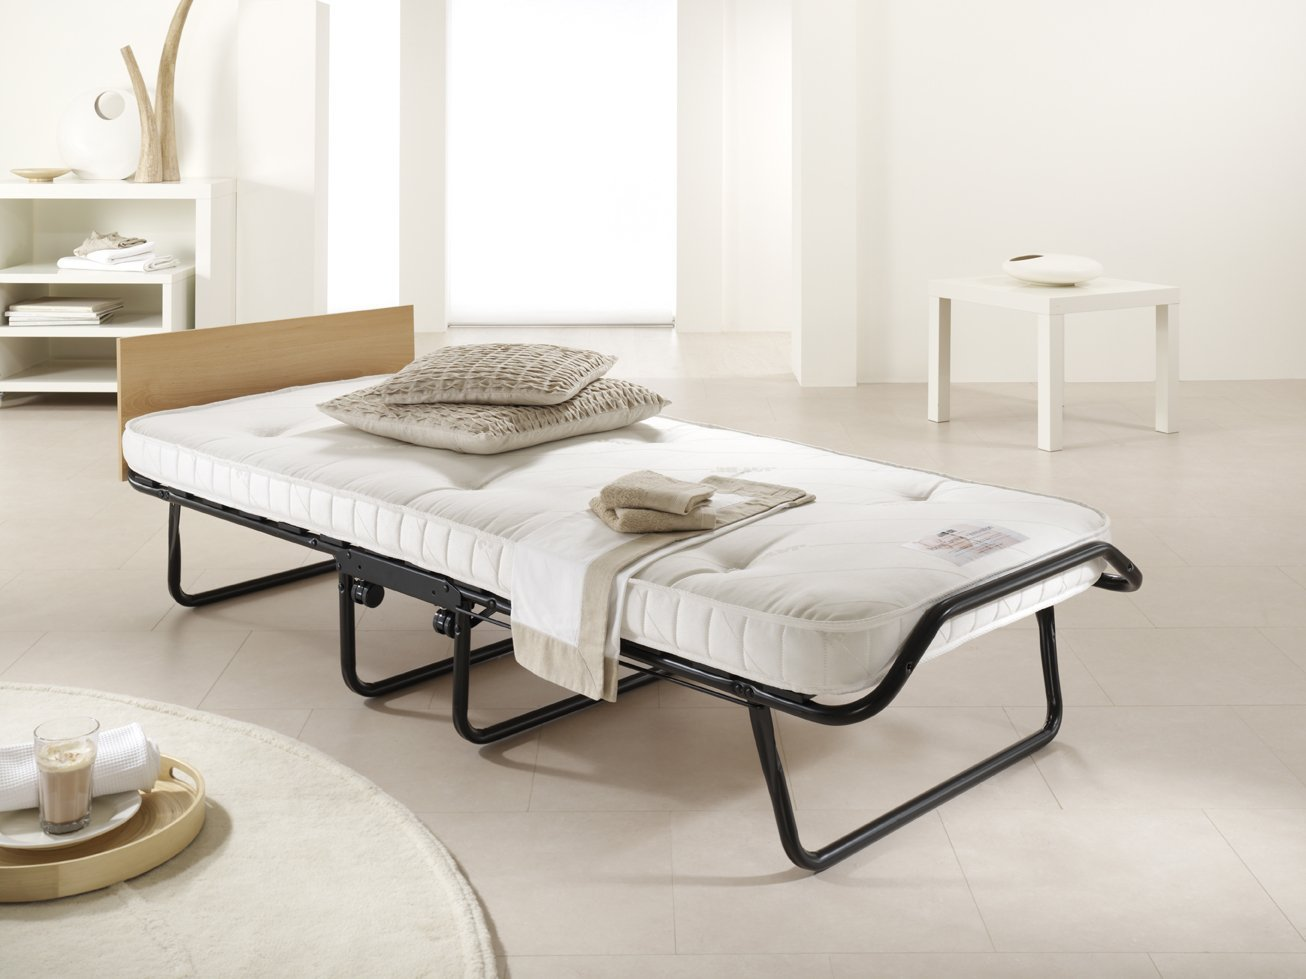 Z Beds For Adults April 2019 Best Folding Beds In The Uk The Complete Guide